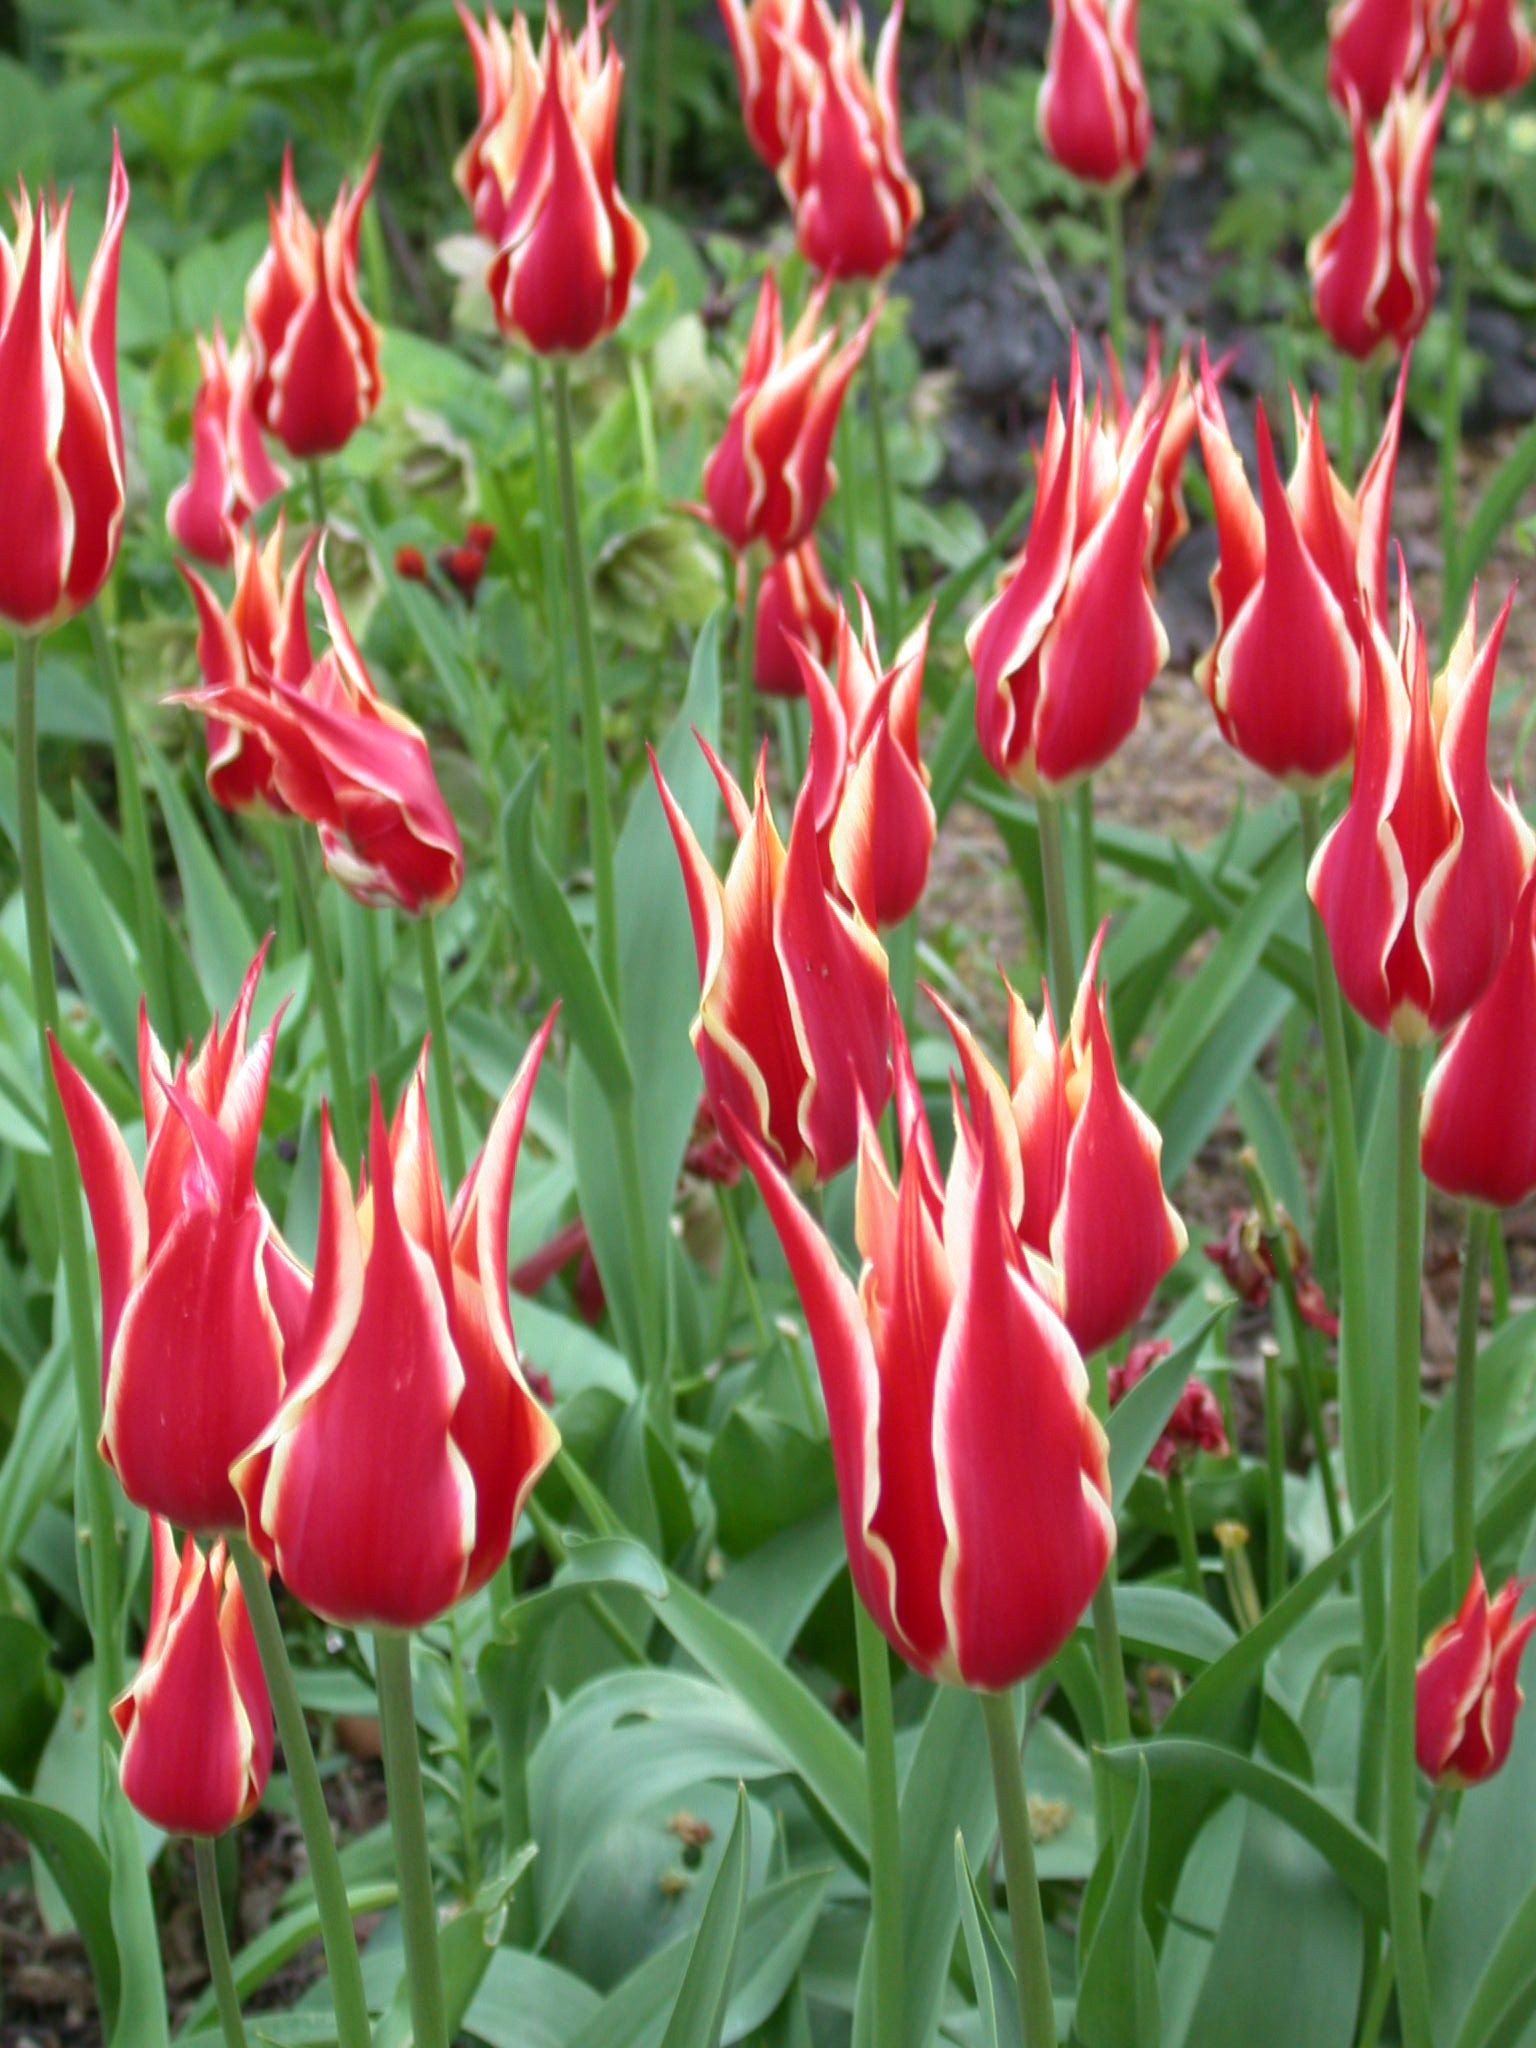 Tulip Alladin S Record Lily Flowered Tulips Lily Flower Tulips Flowers